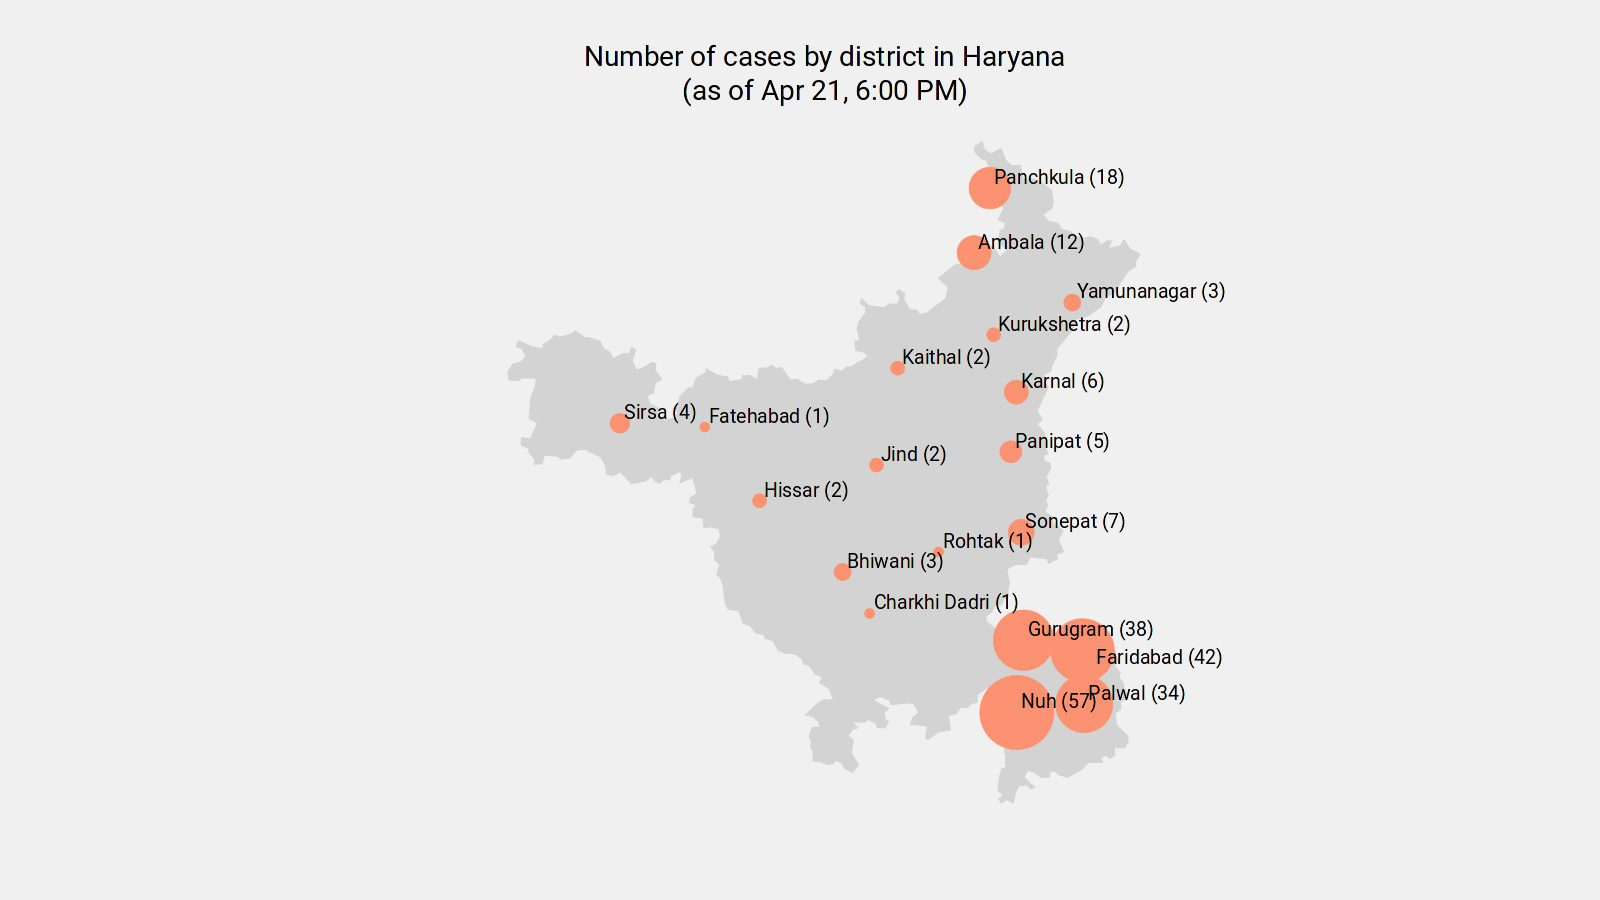 districts-haryana-2020-04-21t1800-4156835